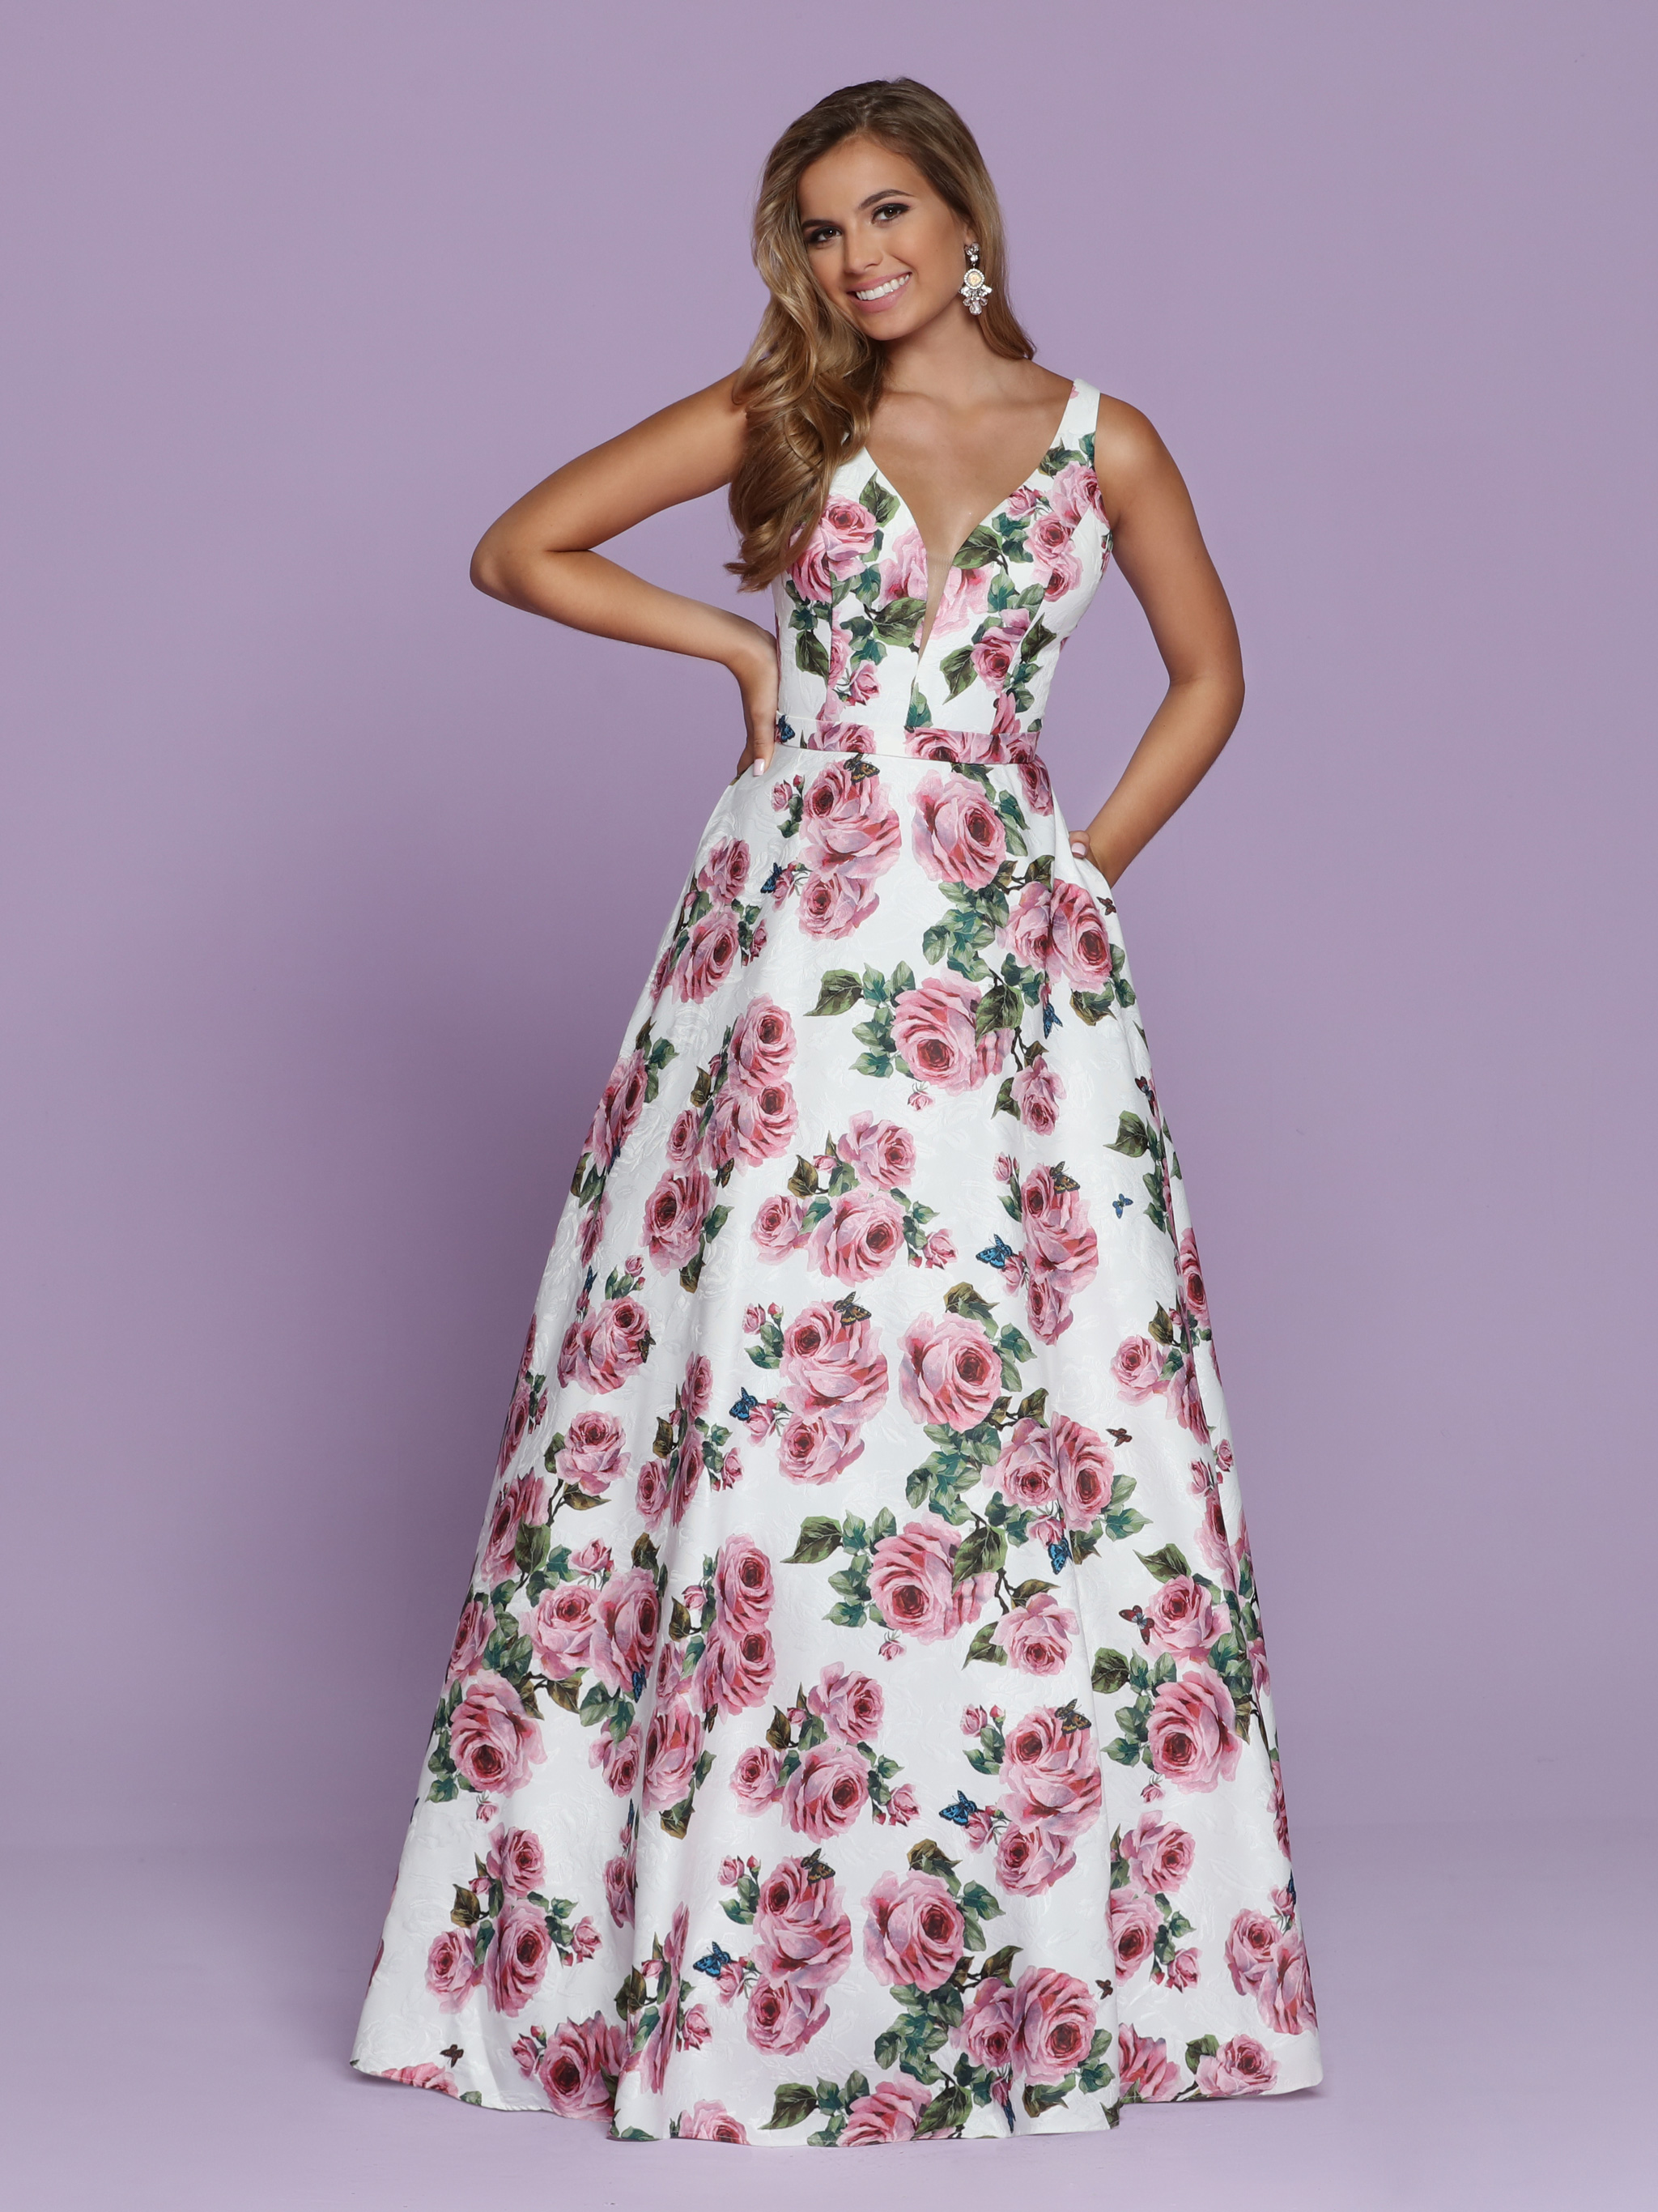 2020 Prom Dress Trends Floral Ball Gowns – Sparkle Prom